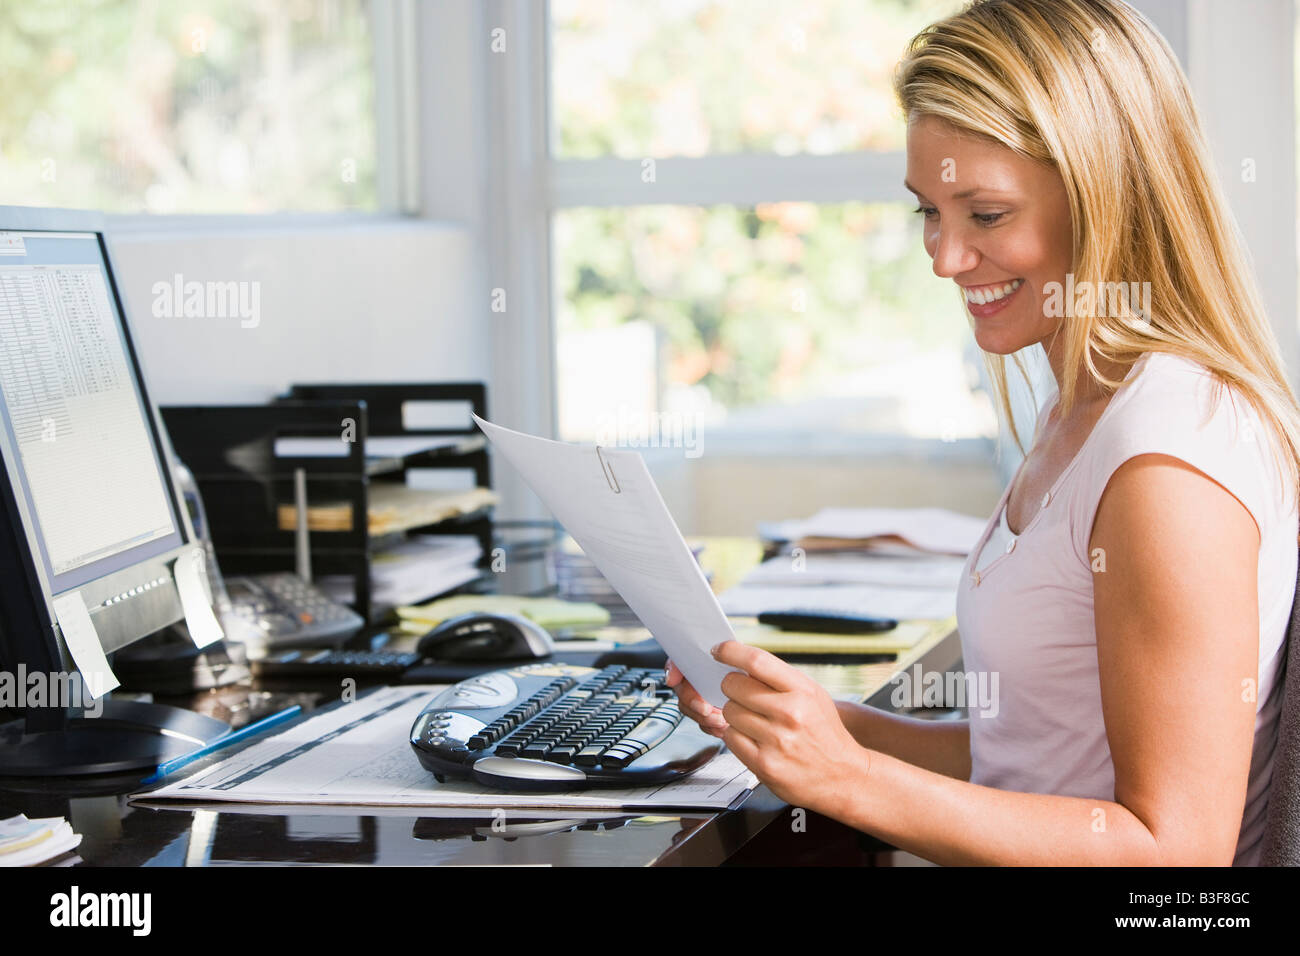 Woman in home office with computer and paperwork smiling - Stock Image